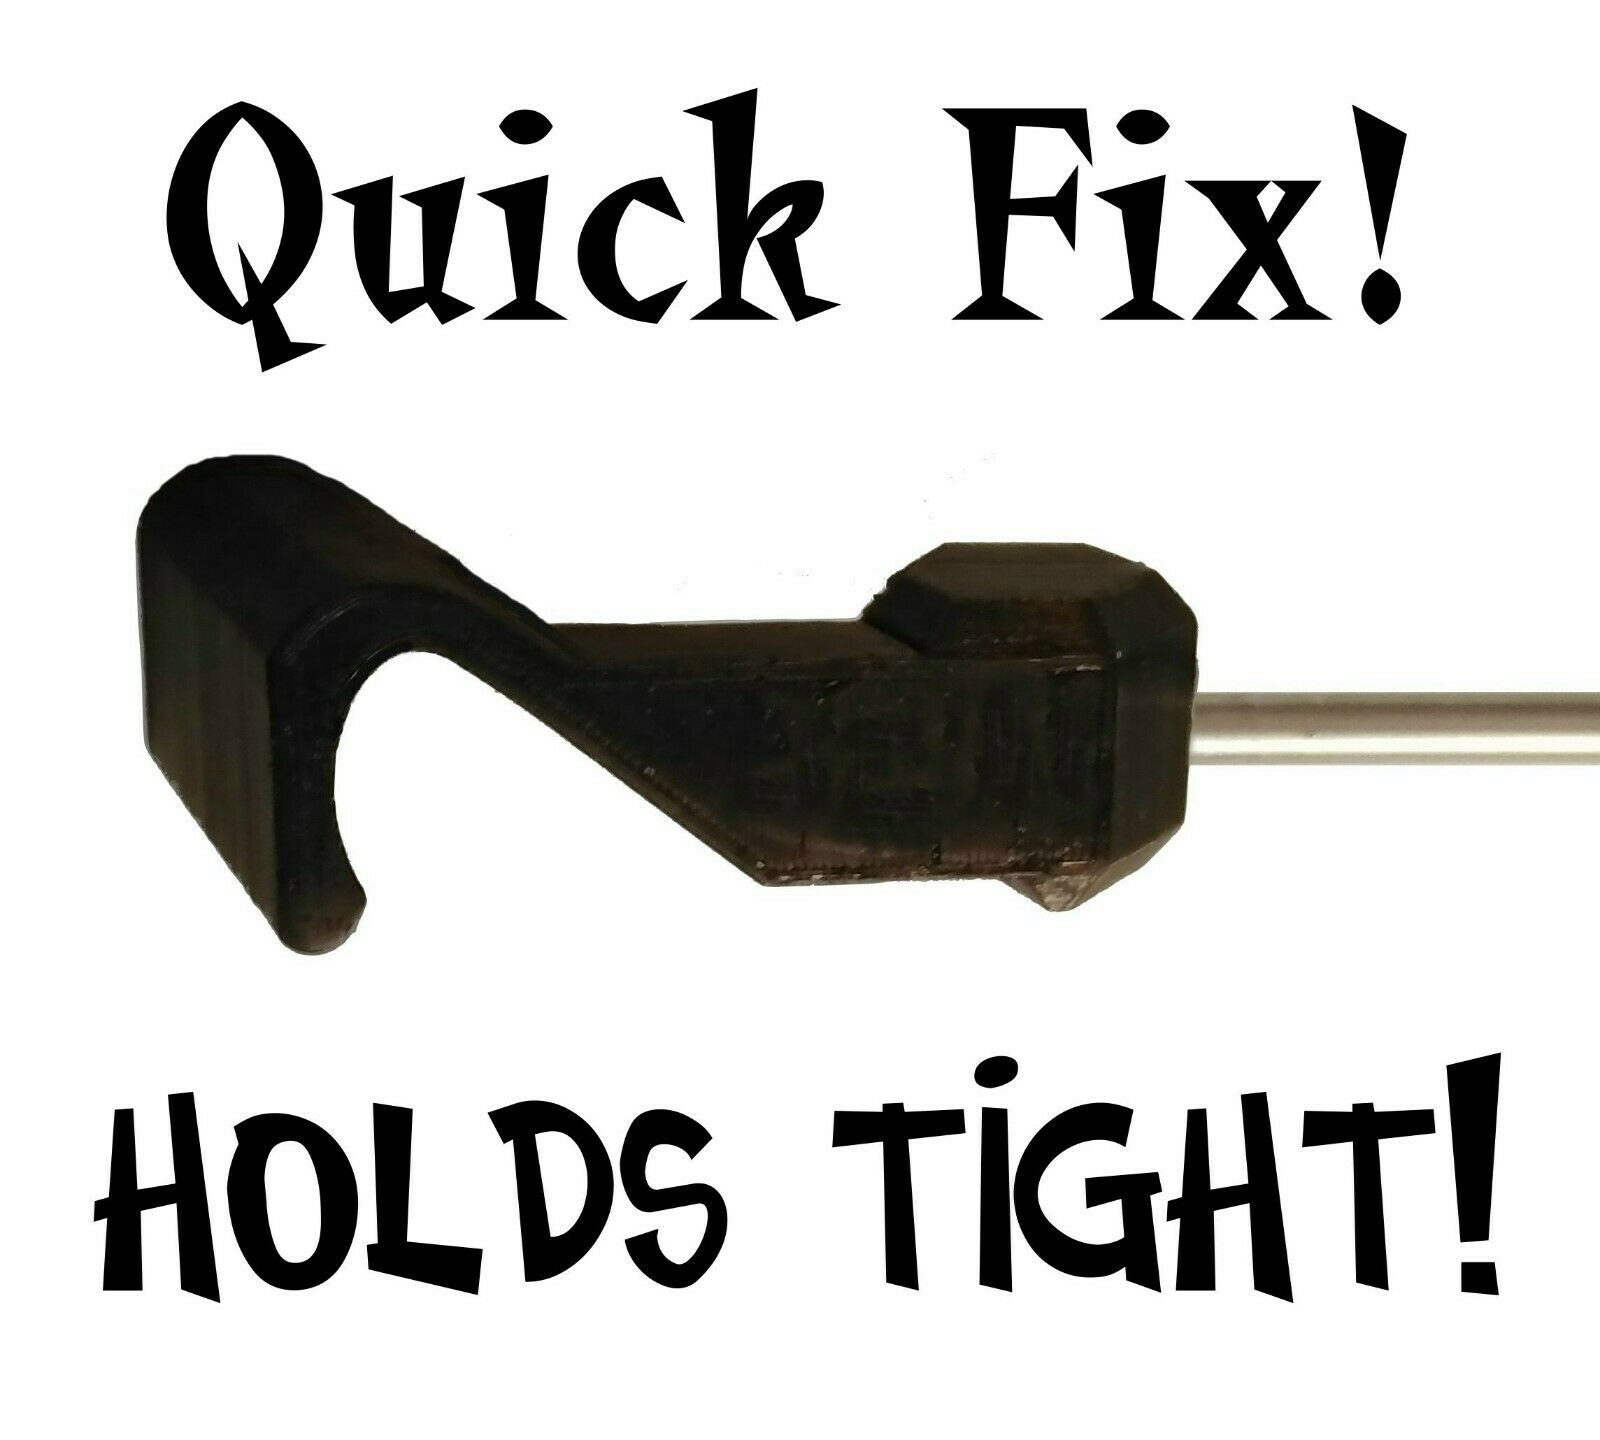 FORD EXPLORER PARKING BRAKE RELEASE HANDLE REPLACEMENT (MONEY BACK GUARANTEE) Not Applicable